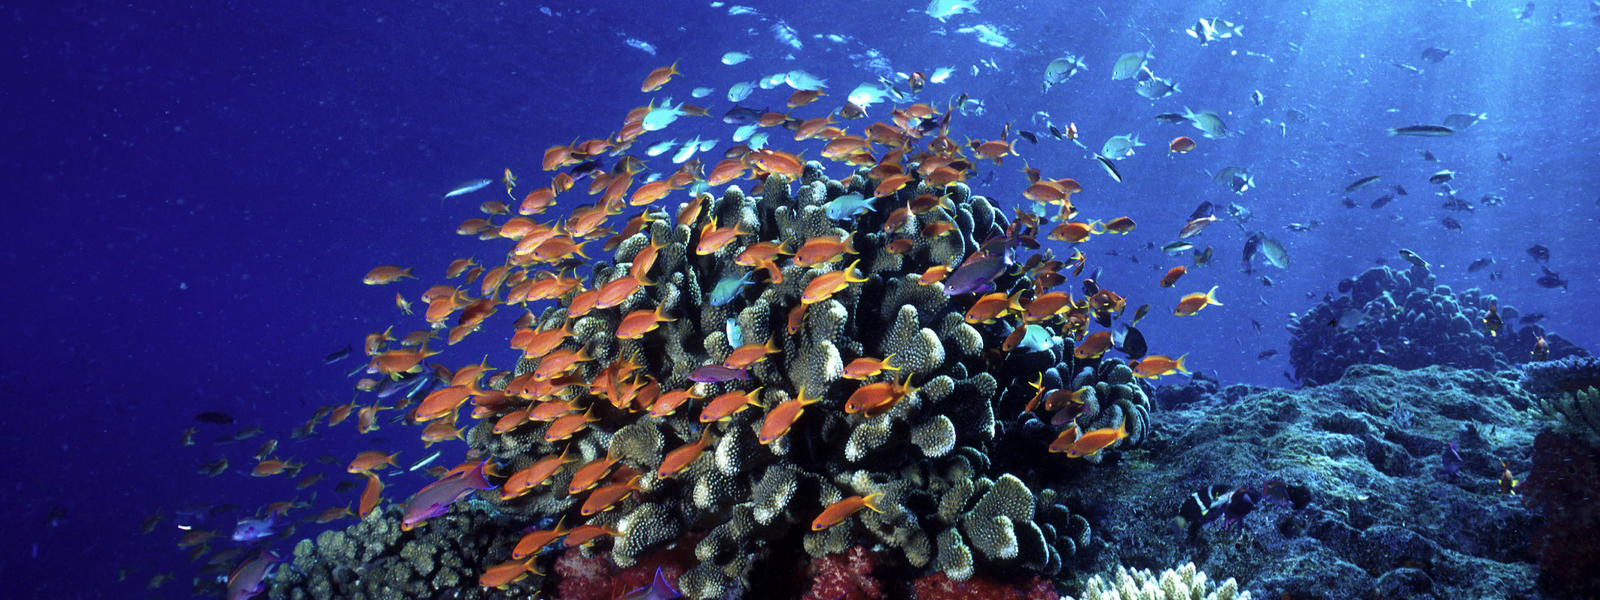 Ocean habitat habitats wwf for How many fish are in the ocean